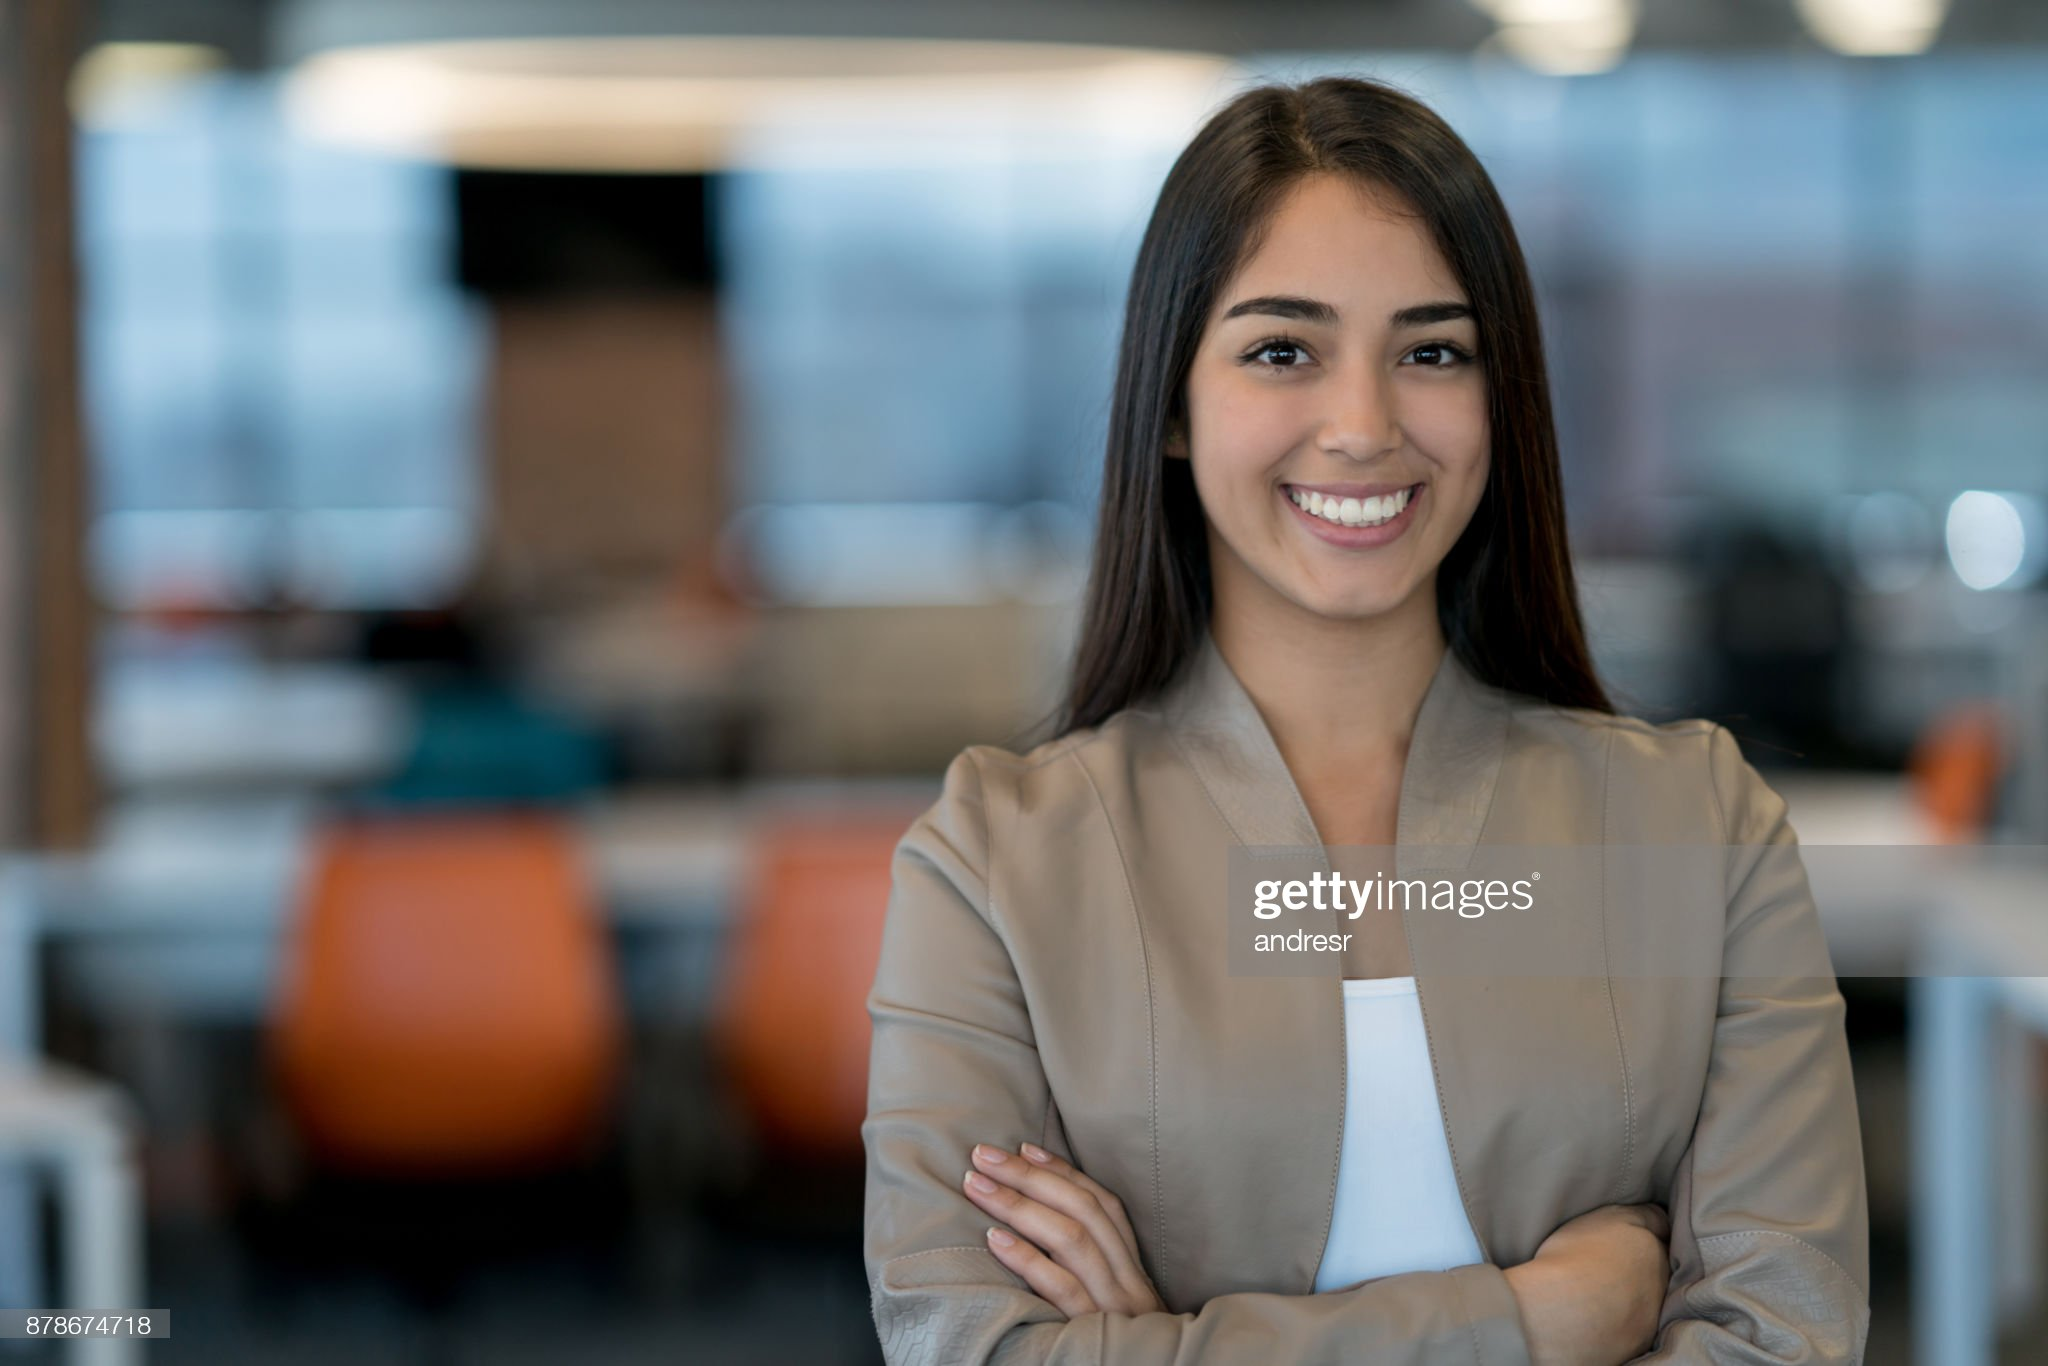 Las mezclas amerindias y europeas Portrait-of-a-business-woman-working-at-the-office-picture-id878674718?s=2048x2048